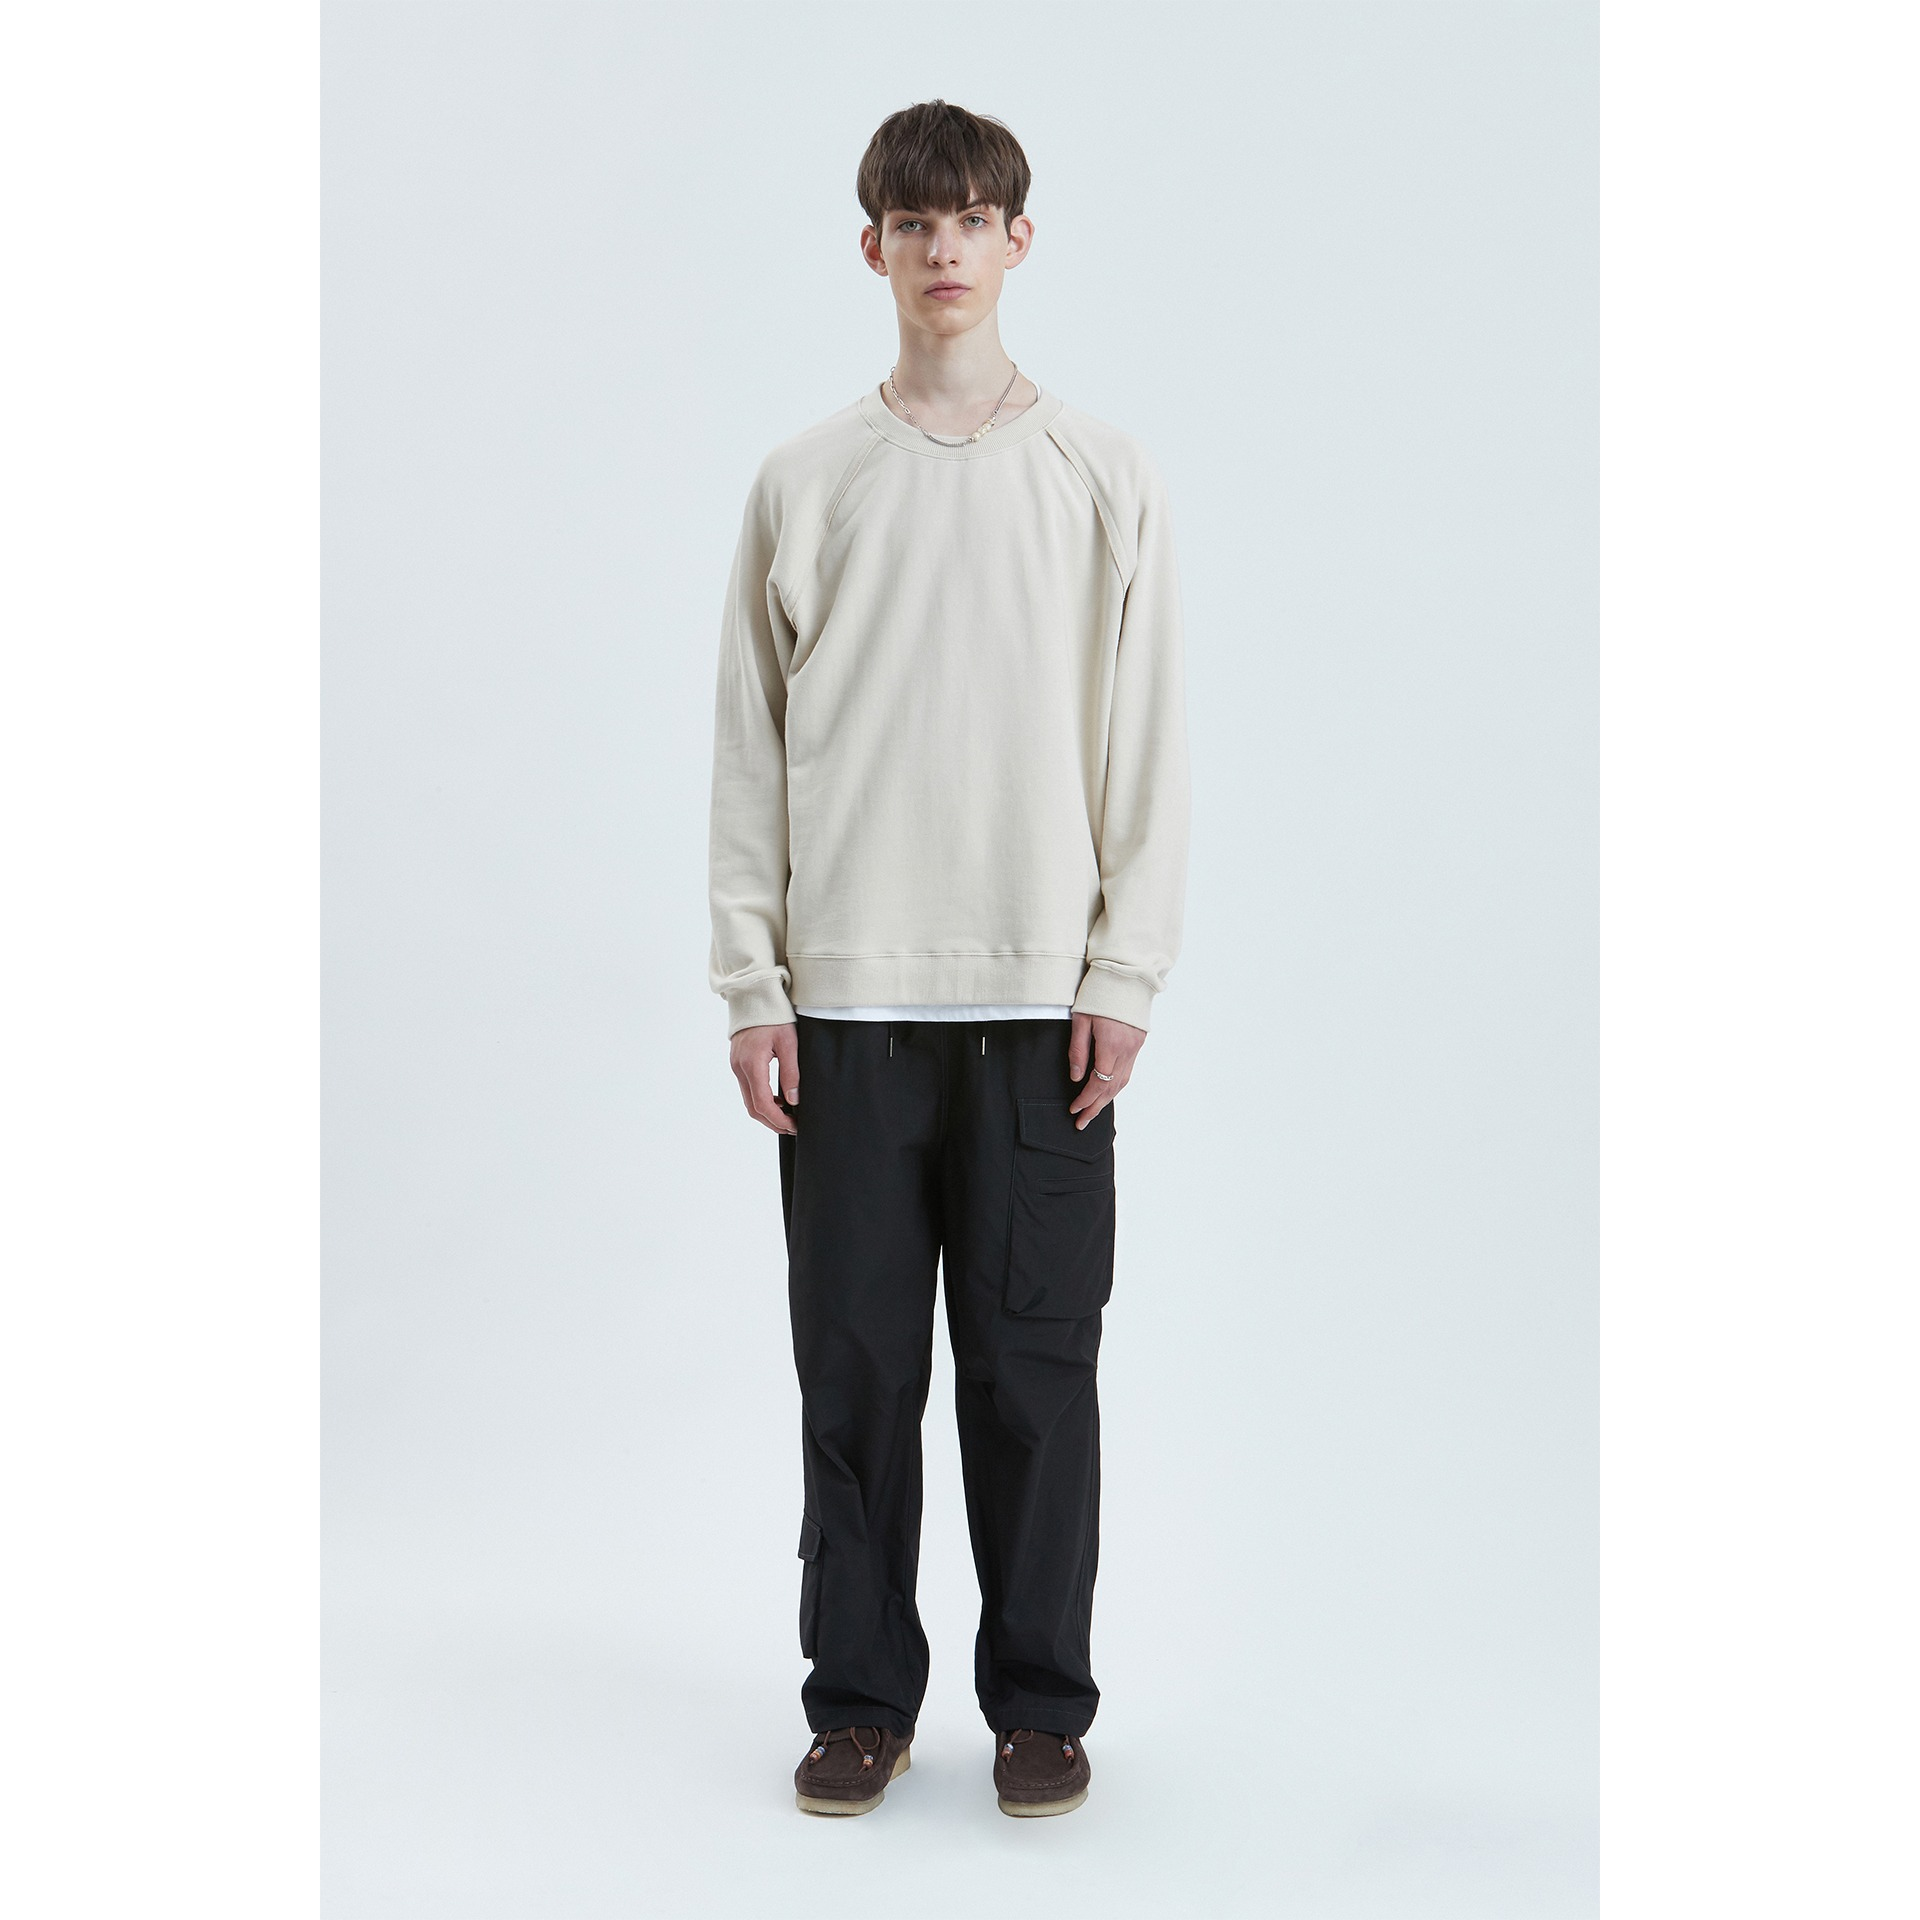 LIFUL SEAM OUT RAGLAN SWEATSHIRT sand beige